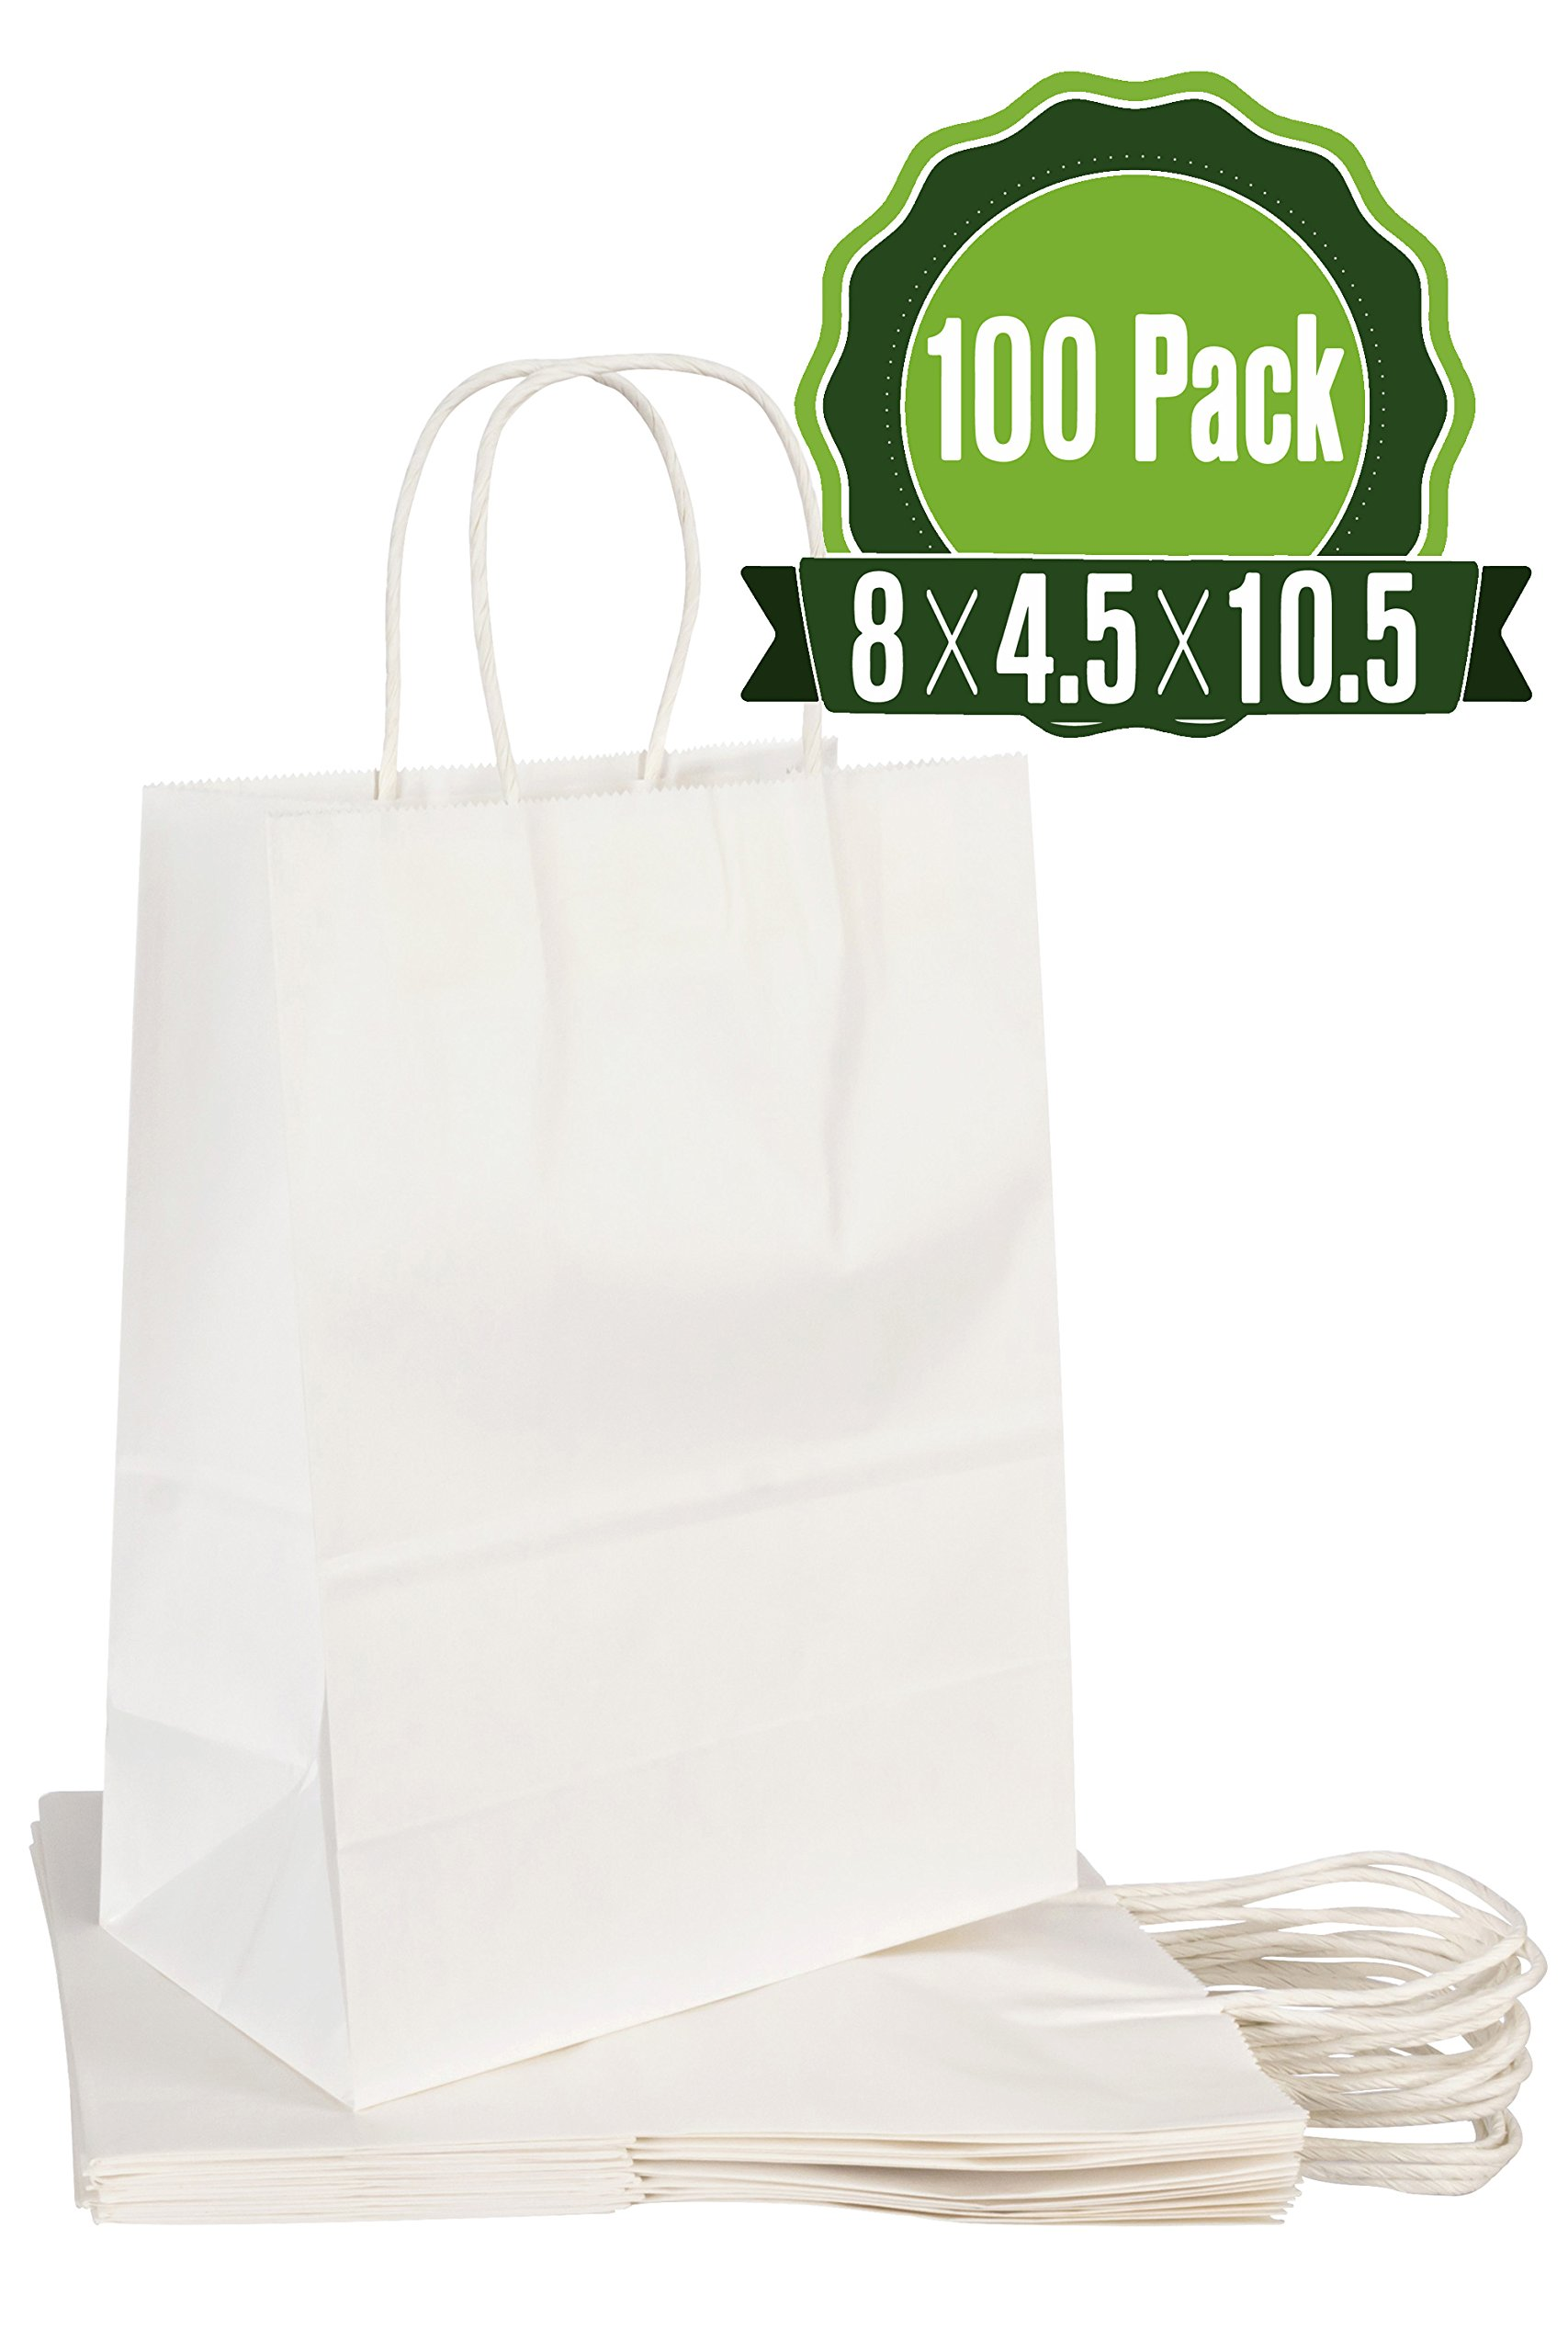 White Kraft Paper Gift Bags Bulk with Handles 8 X 4.5 X 10.5 [100Pc]. Ideal for Shopping, Packaging, Retail, Party, Craft, Gifts, Wedding, Recycled, Business, Goody and Merchandise Bag by Shoplenty